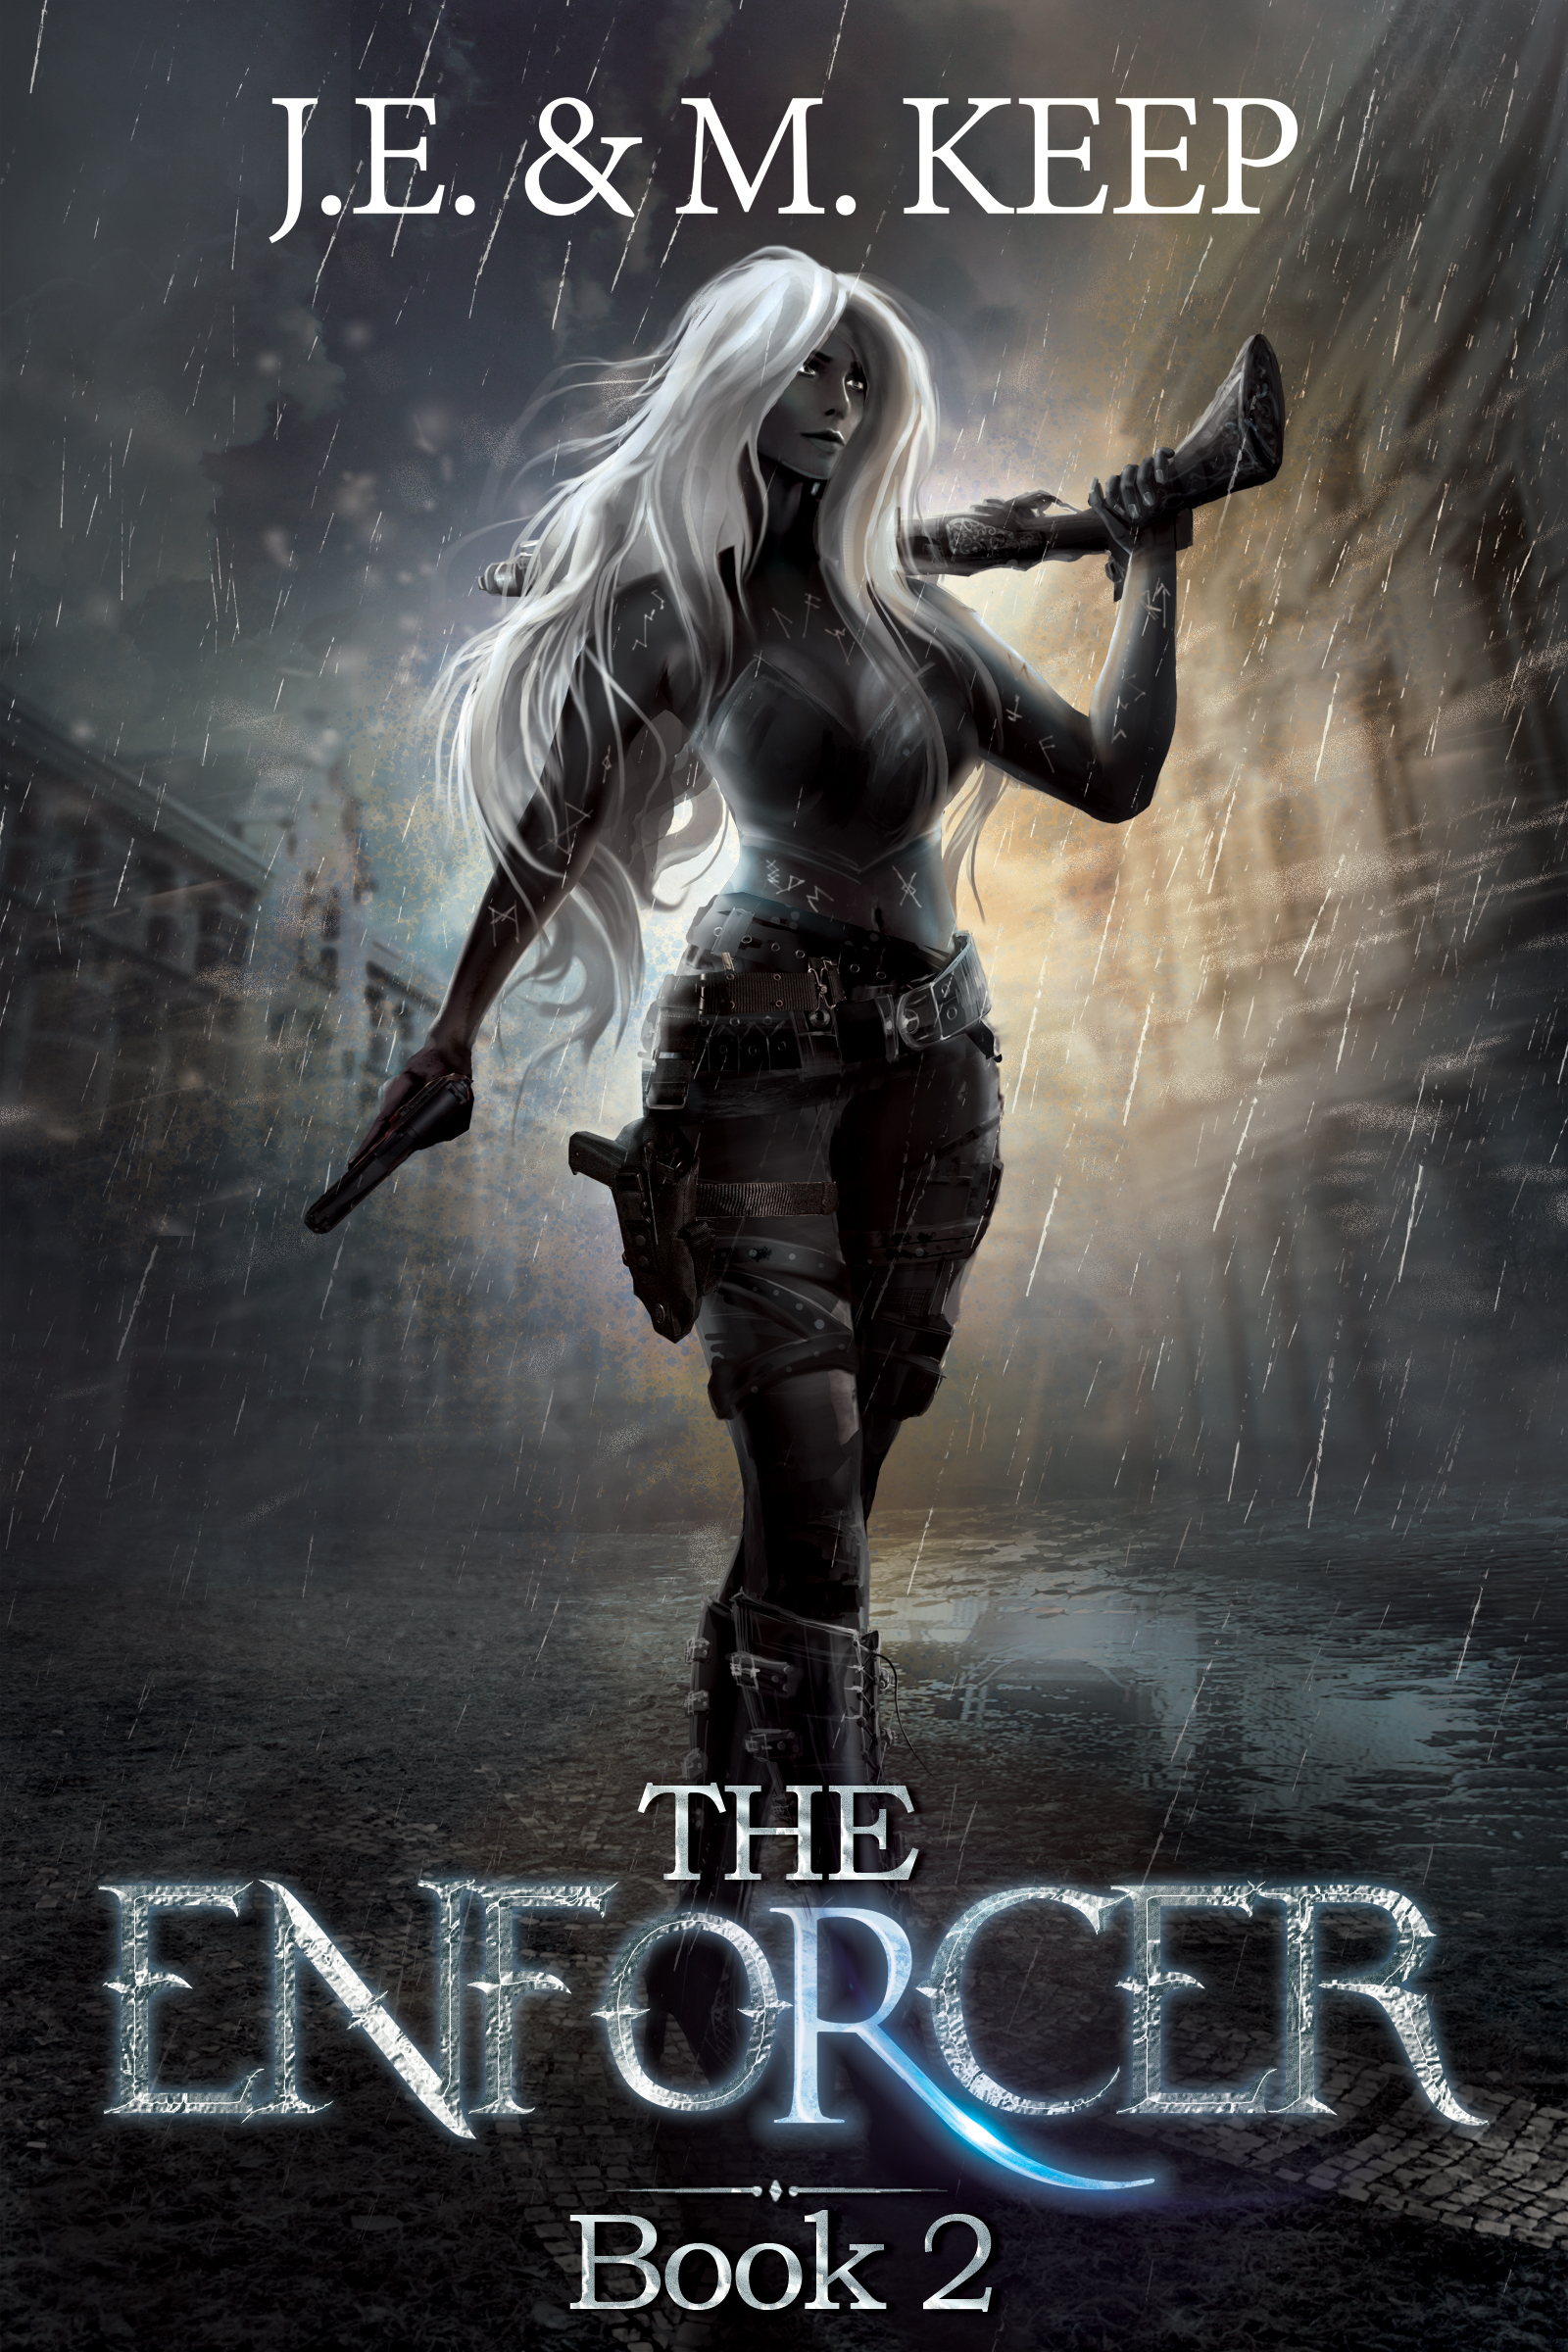 The Enforcer: Book 2